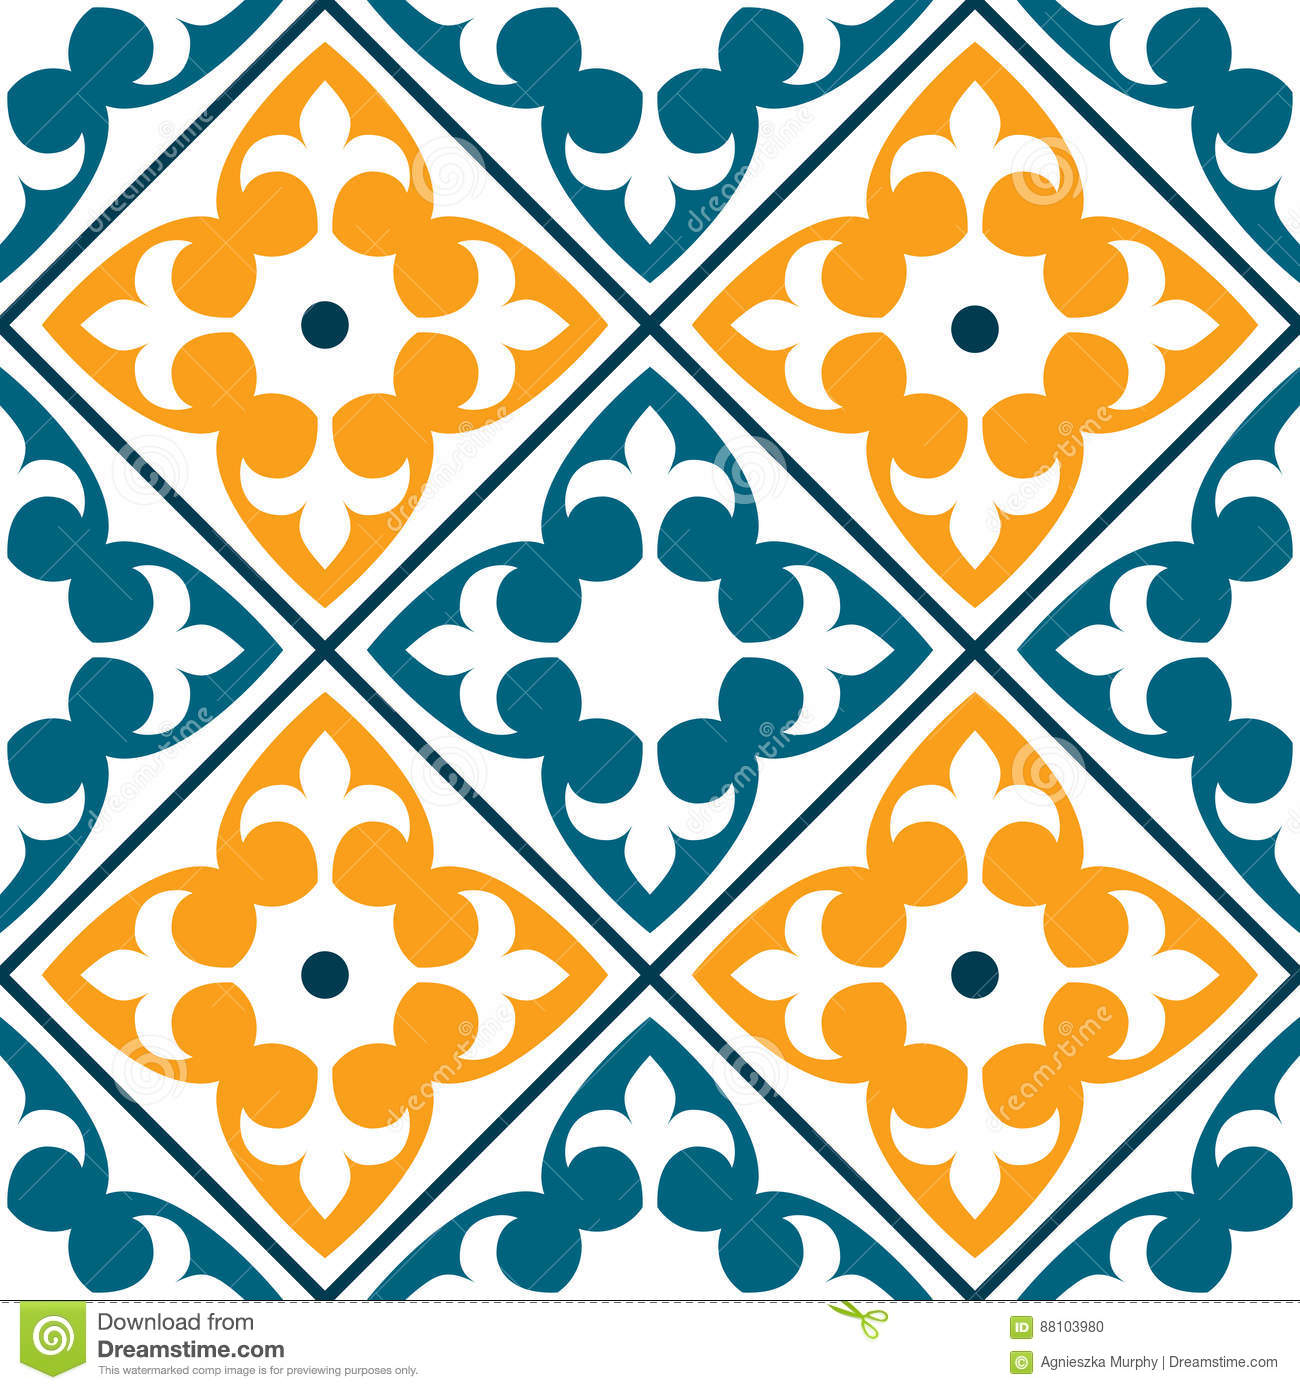 Spanish Tile Pattern, Portuguese Or Moroccan Tiles Design, Seamless ...